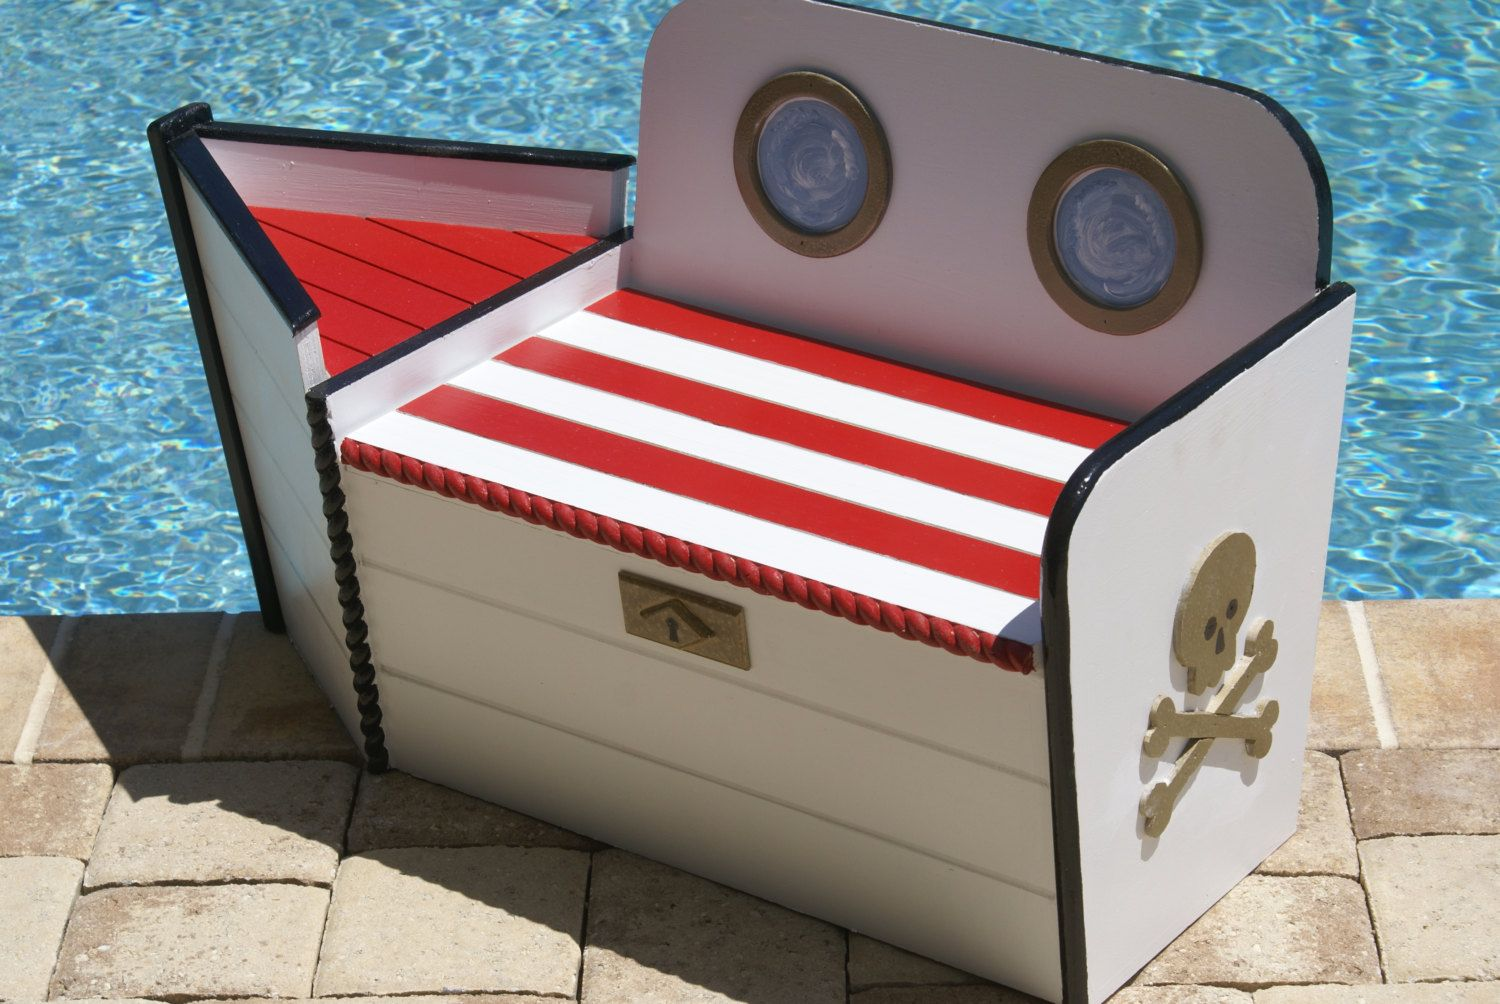 Pirate Toy Chest Wooden Toy Box Boat Shaped Wood Toy Chest Pirate Ship Toy Storage Nautical Decor Beach House Wooden Toy Boxes Wood Toy Box Wood Toy Chest